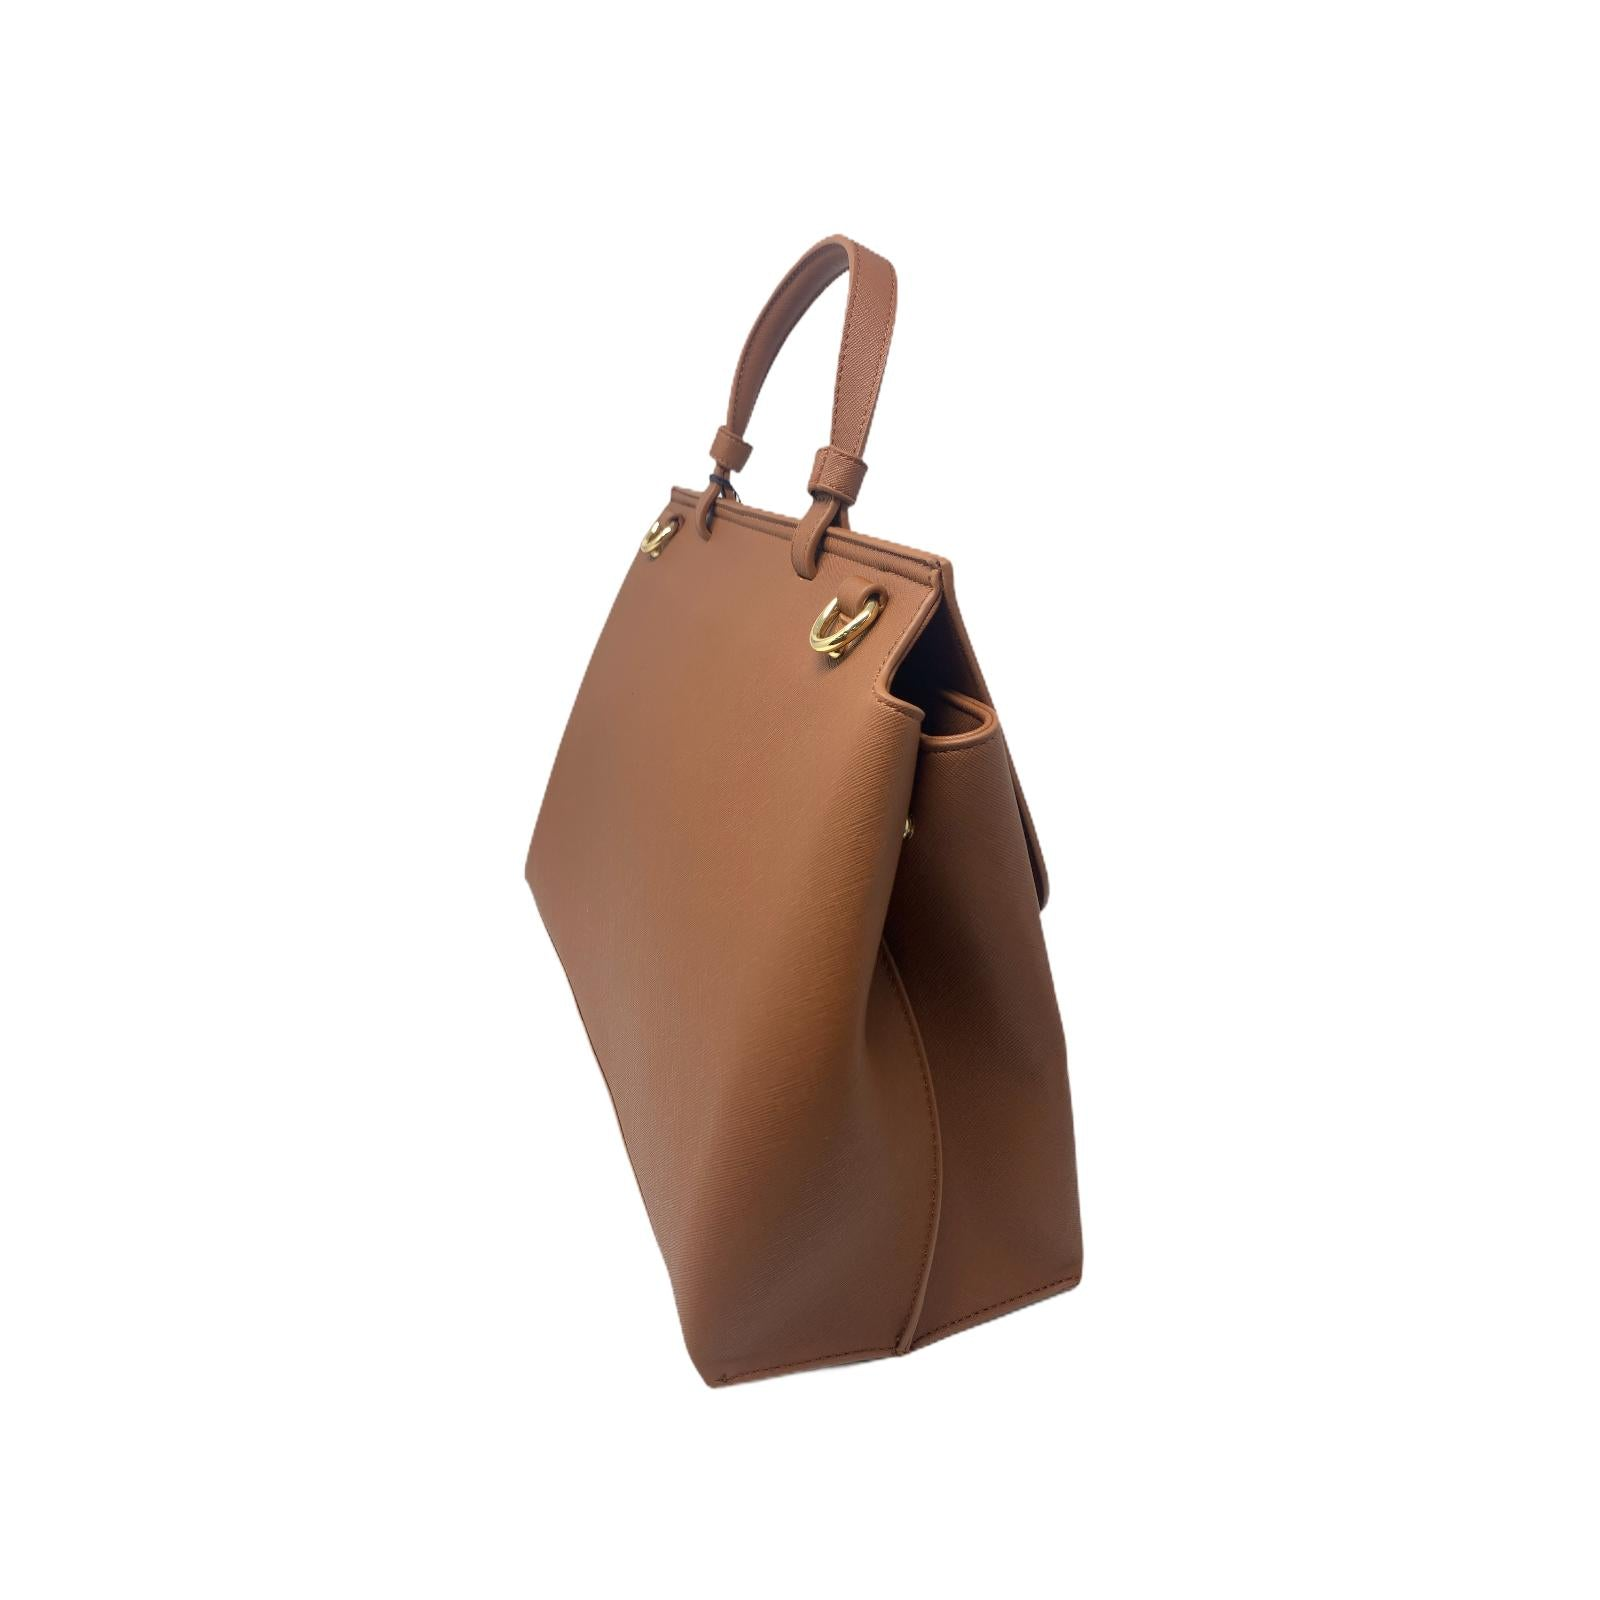 Borsa Tru Trussardi Shopper Bag Donna Marrone Chiaro